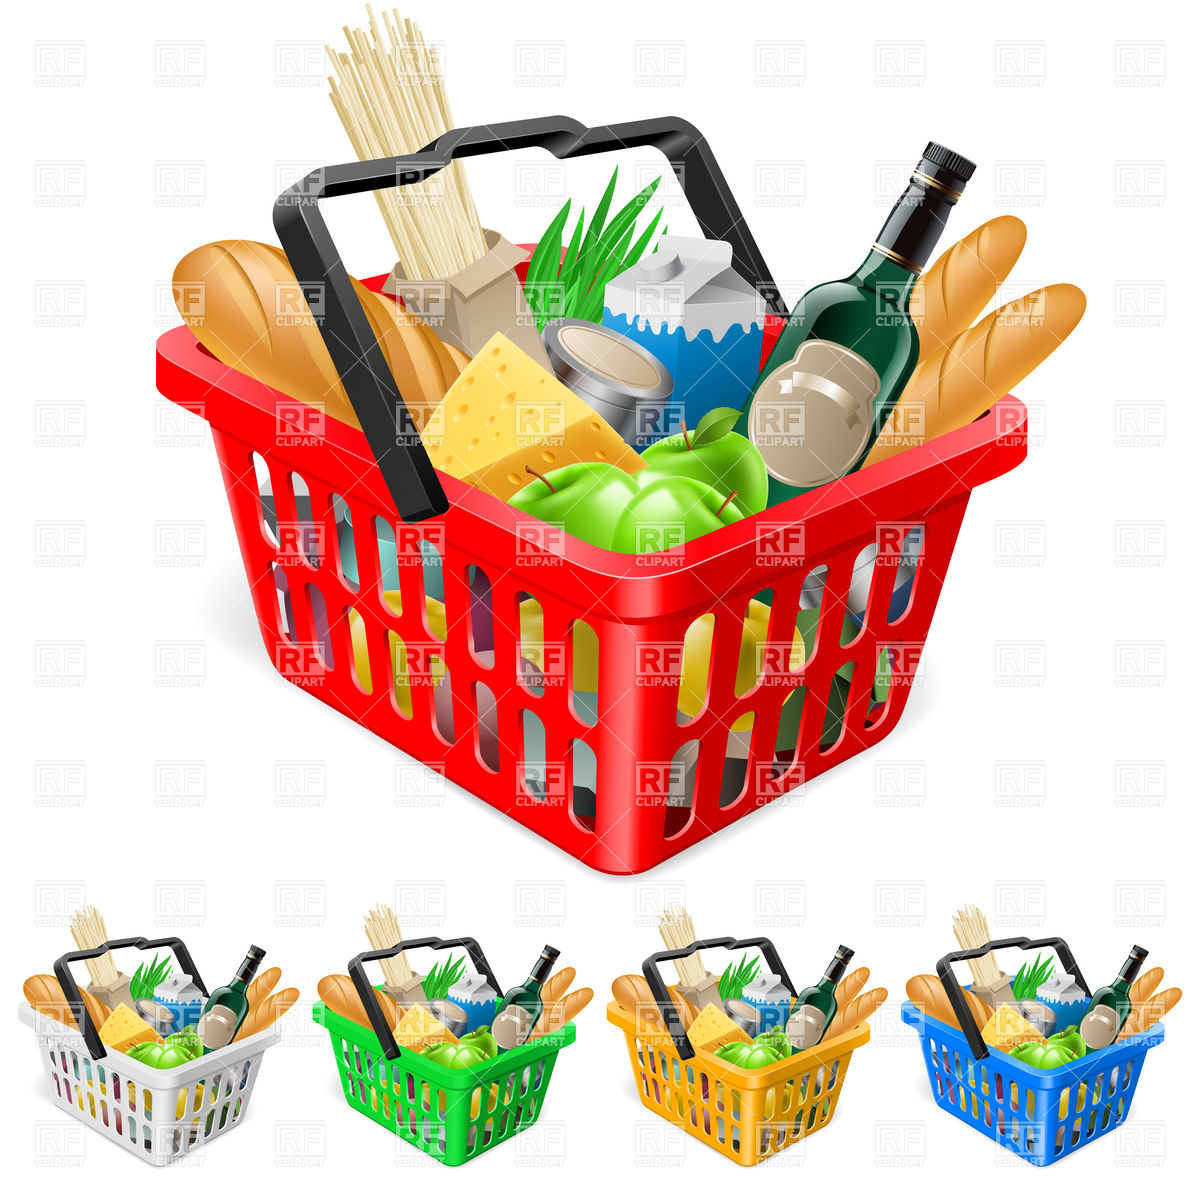 Shopping for food clipart clip art royalty free download Shopping basket with food Vector Image #8054 – RFclipart clip art royalty free download